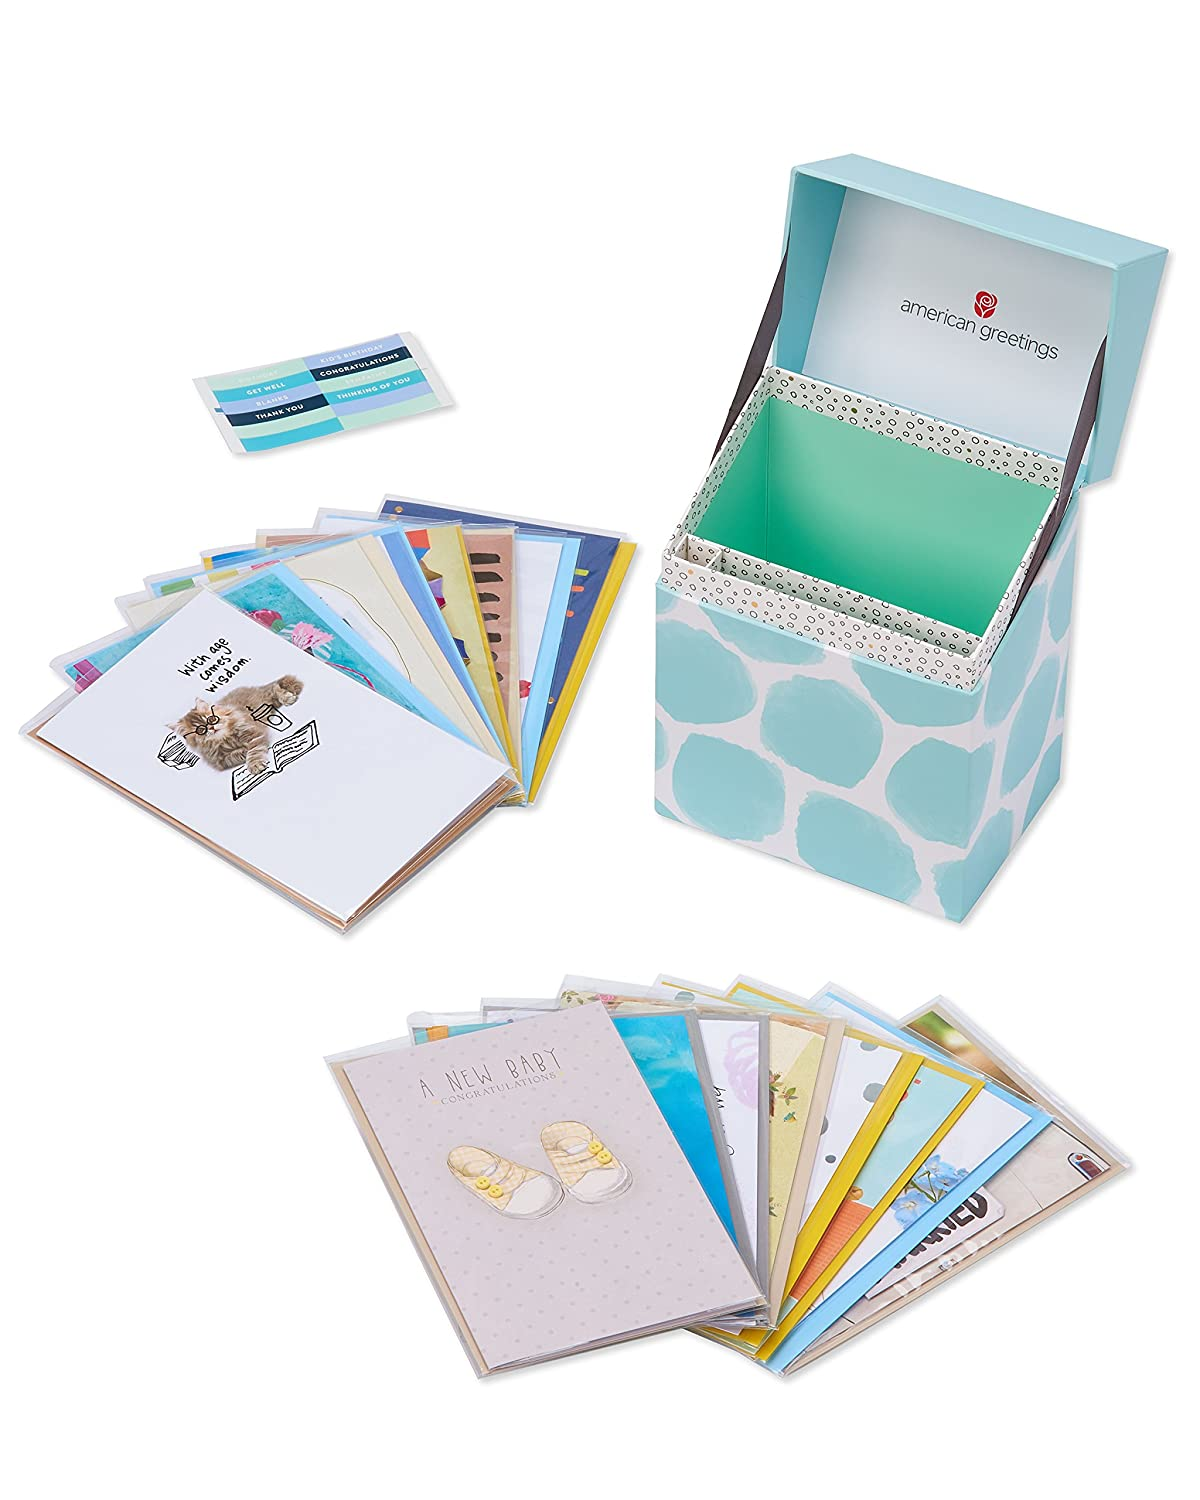 Amazon american greetings starter kit greeting card collection amazon american greetings starter kit greeting card collection with organizer 16 count office products kristyandbryce Choice Image